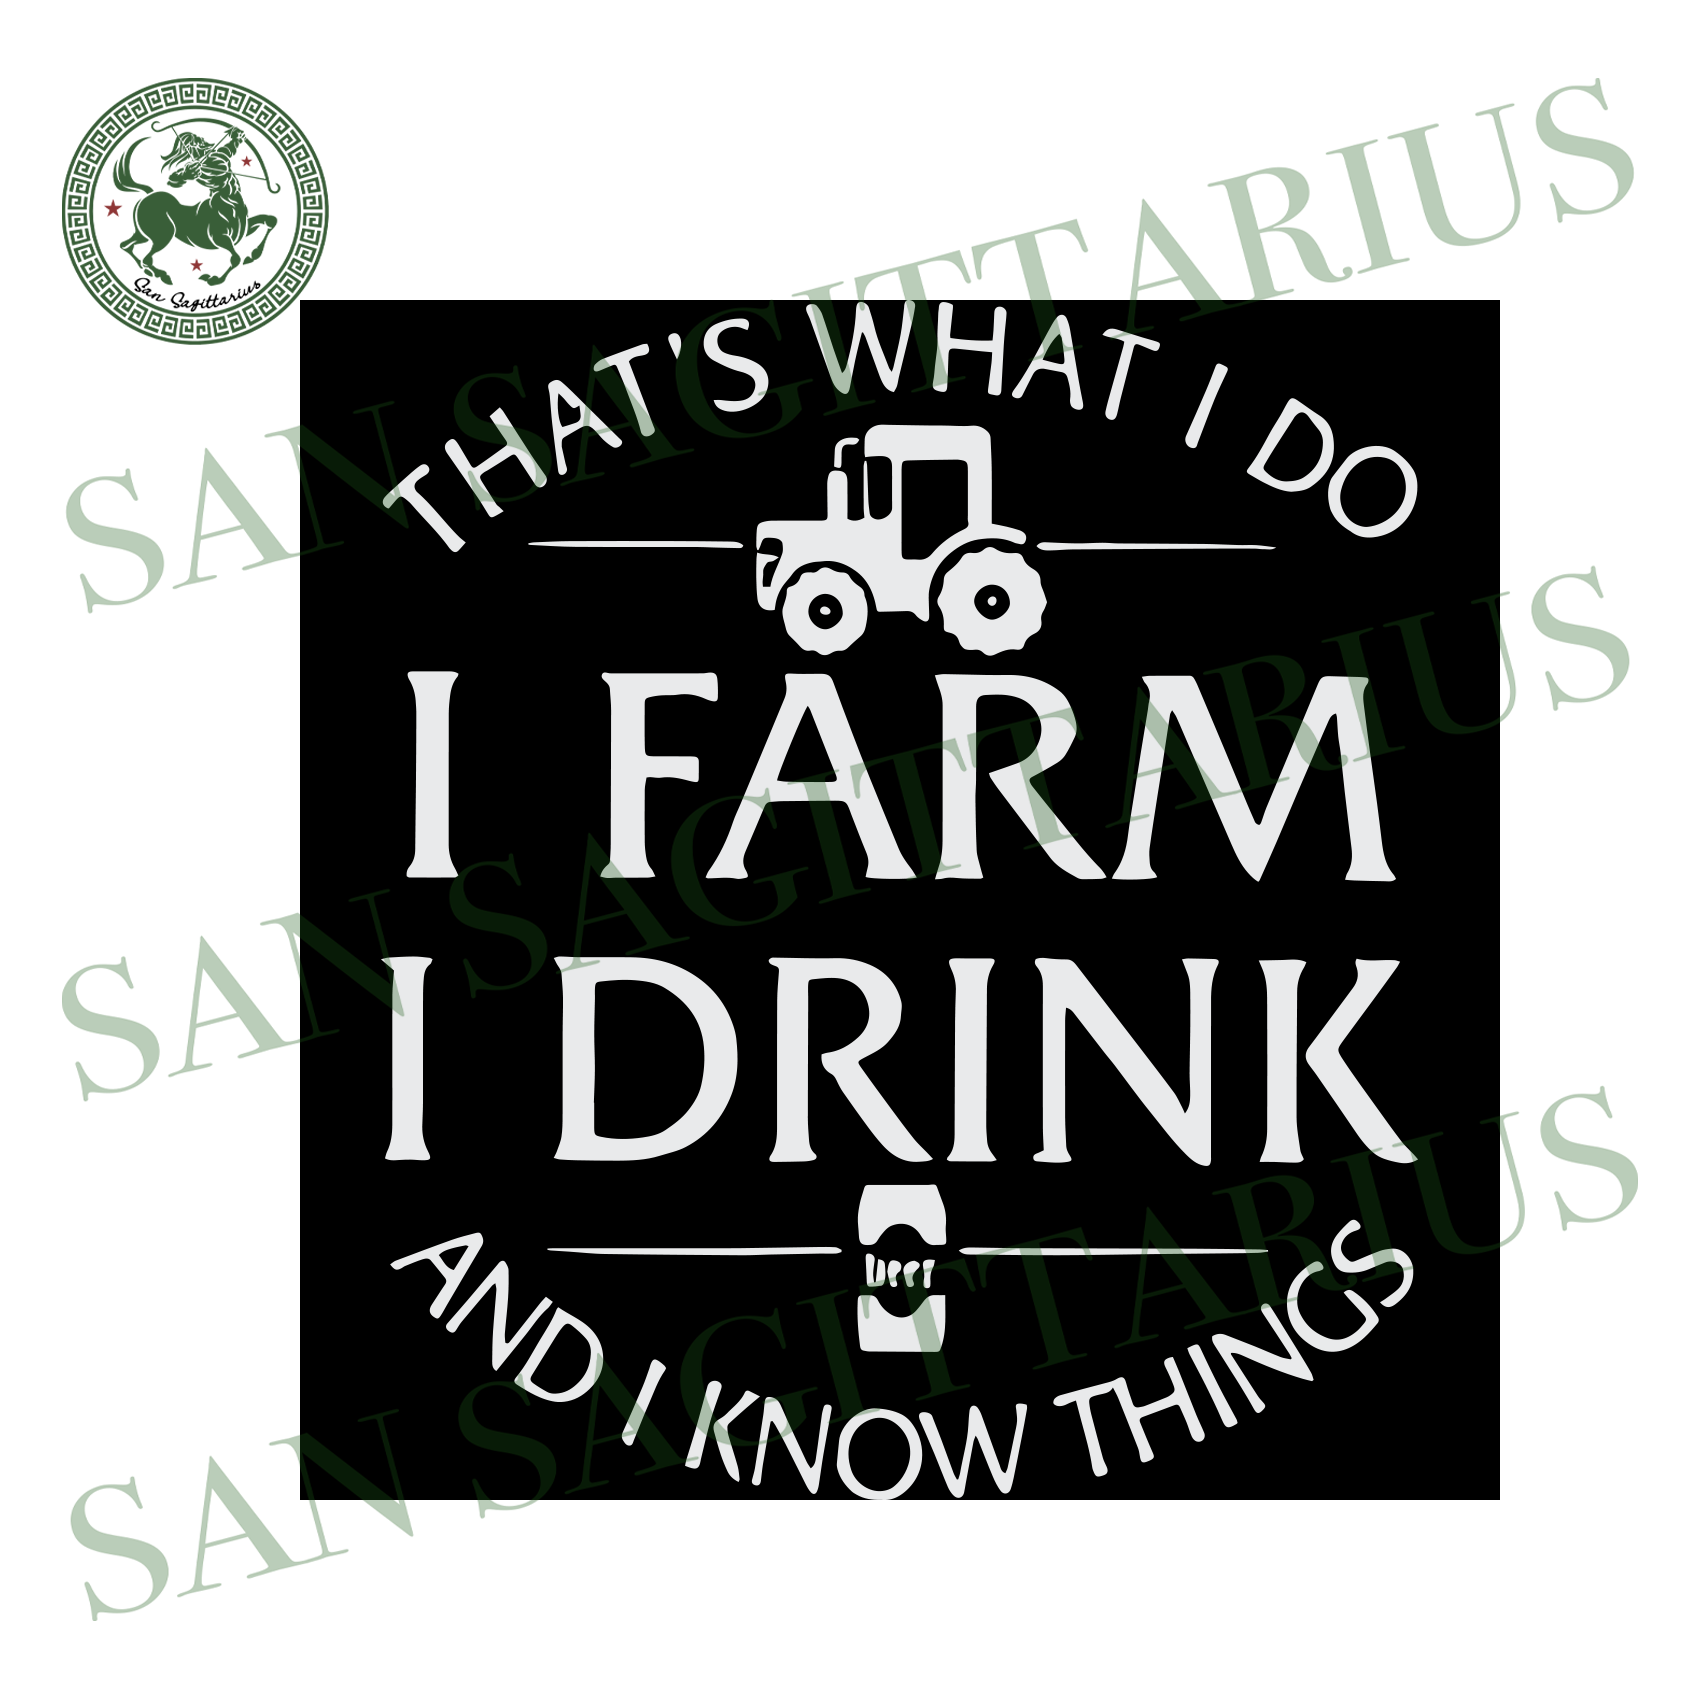 That's What I Do I Farm I Drink And I Know Things, Trending Svg, Drink Svg, Drinking, Love Drunk, Beer Svg, Love Beer, Farm Svg, Quote Svg, Funny Quote, Inspired Quote, Trucks Svg, Truck Il